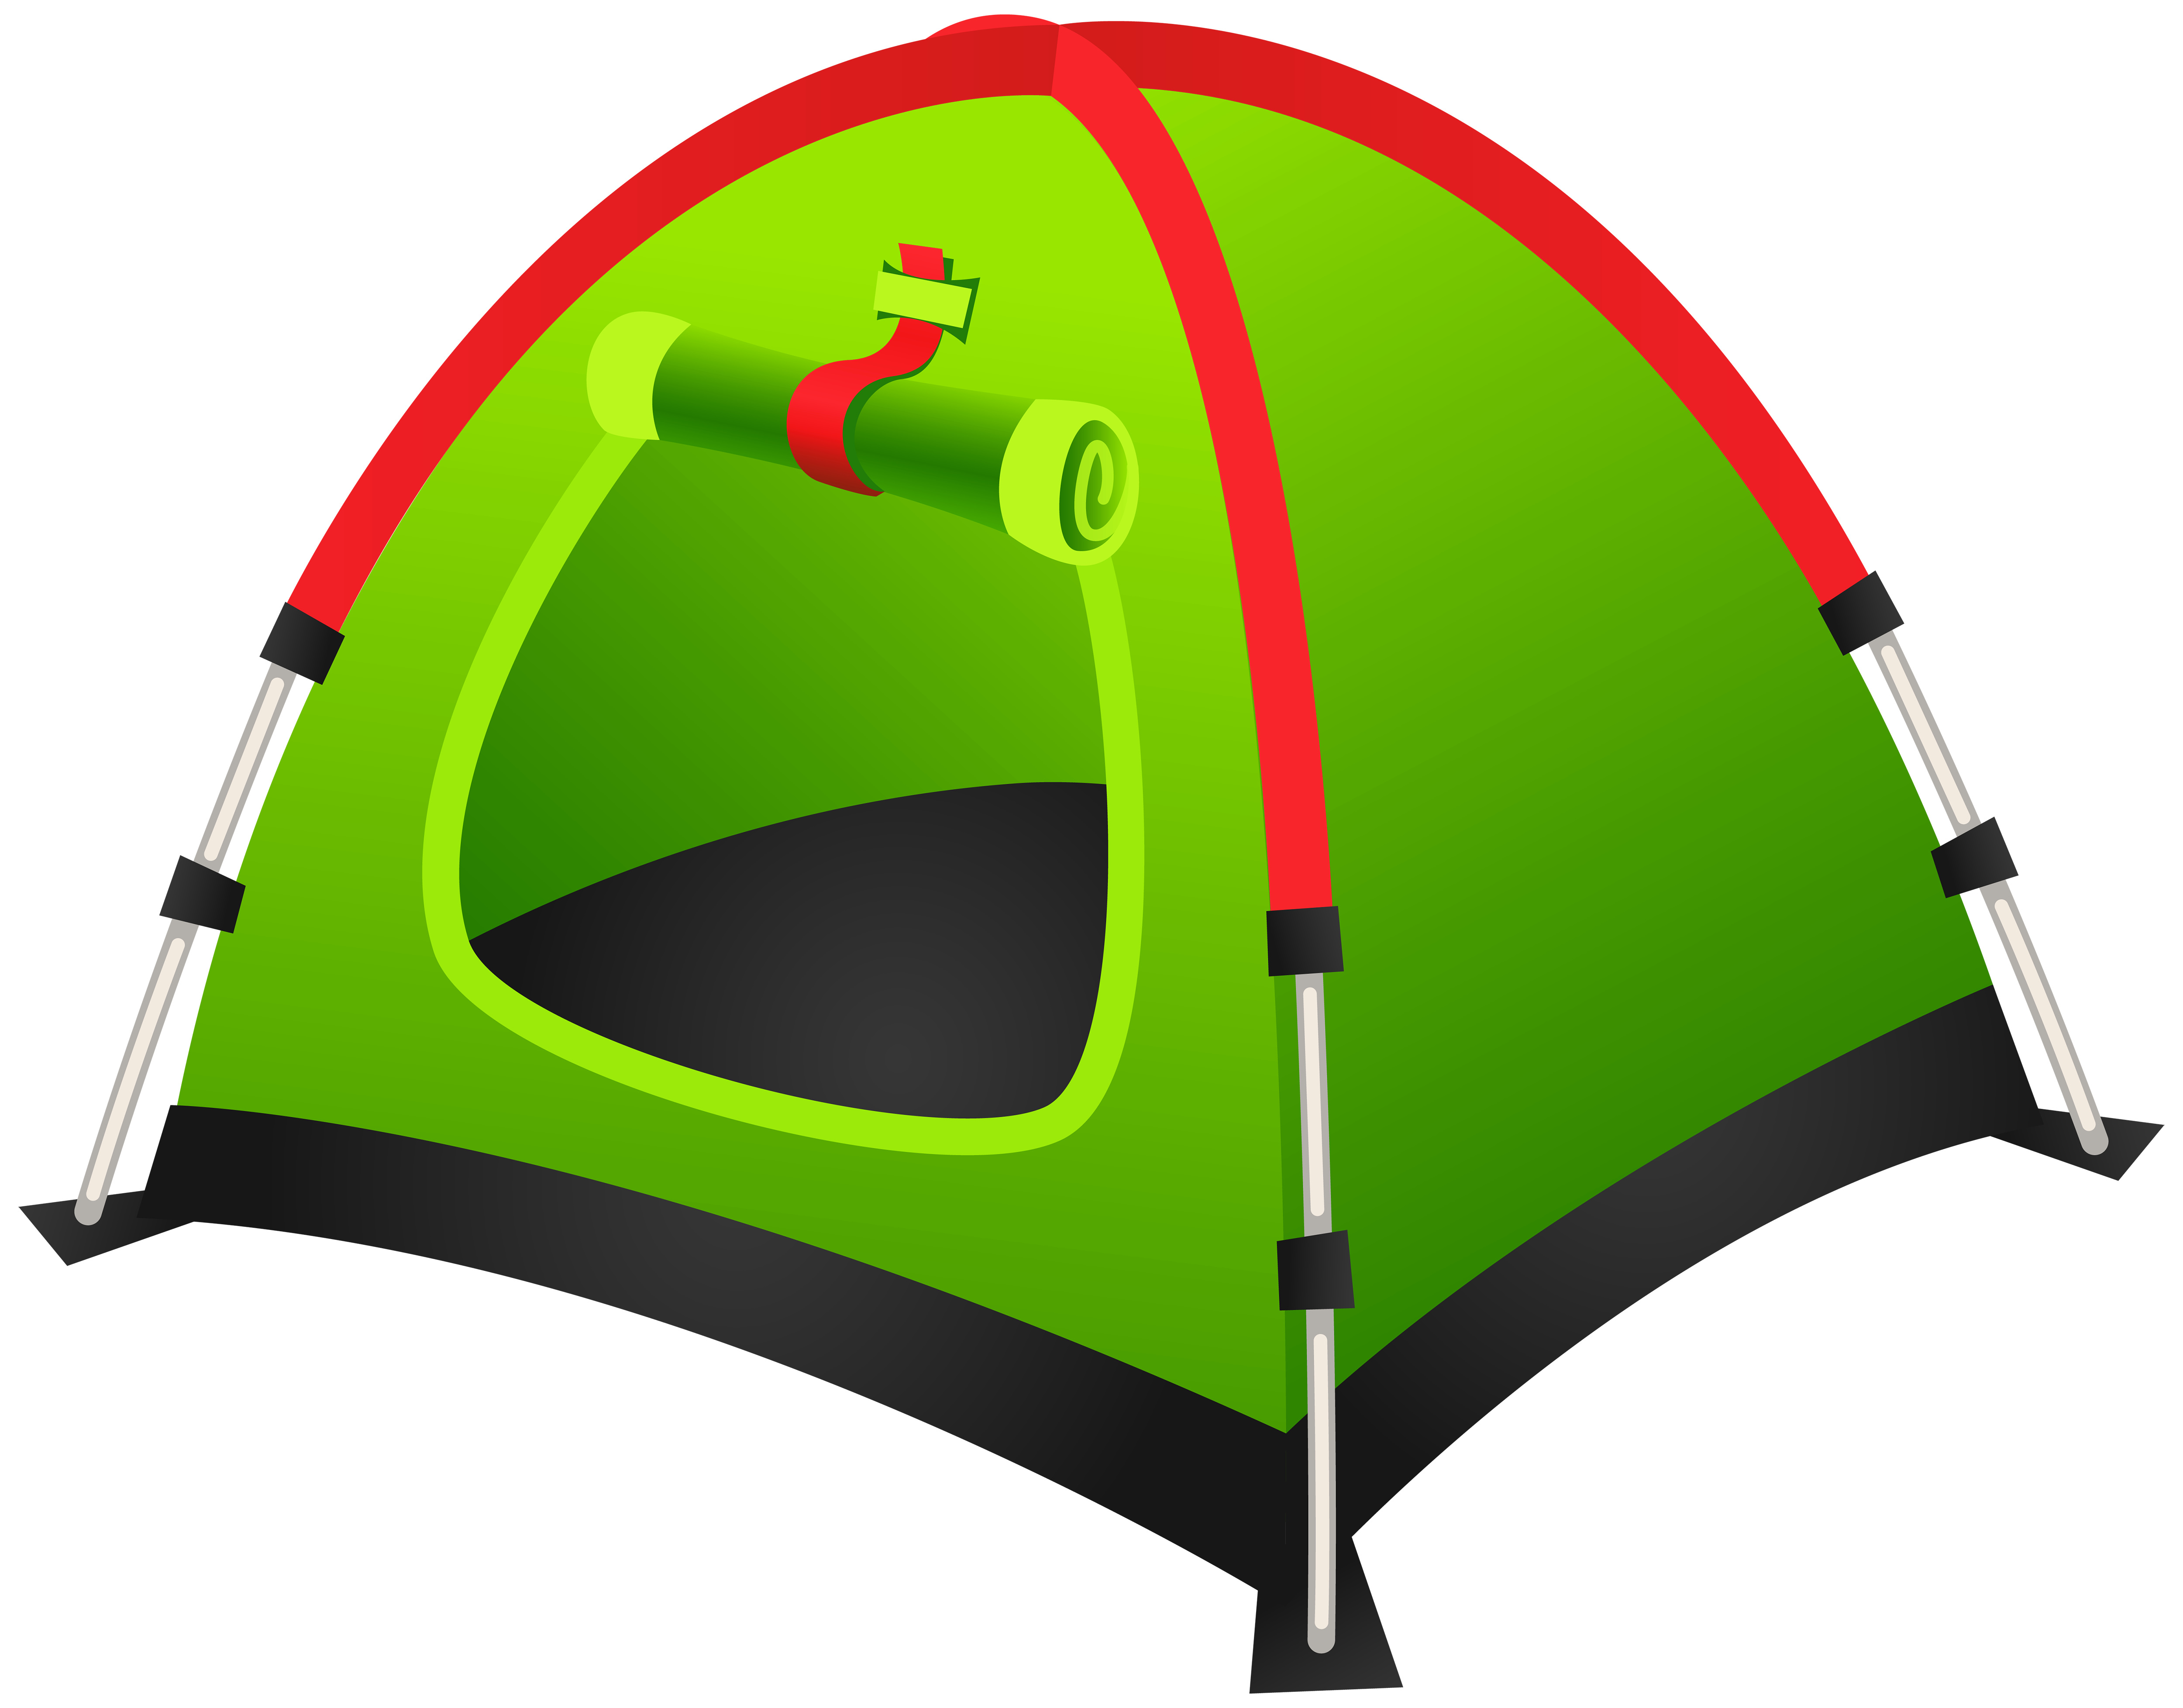 Tent images clipart clip royalty free stock Tent clipart free download clip art on - ClipartBarn clip royalty free stock